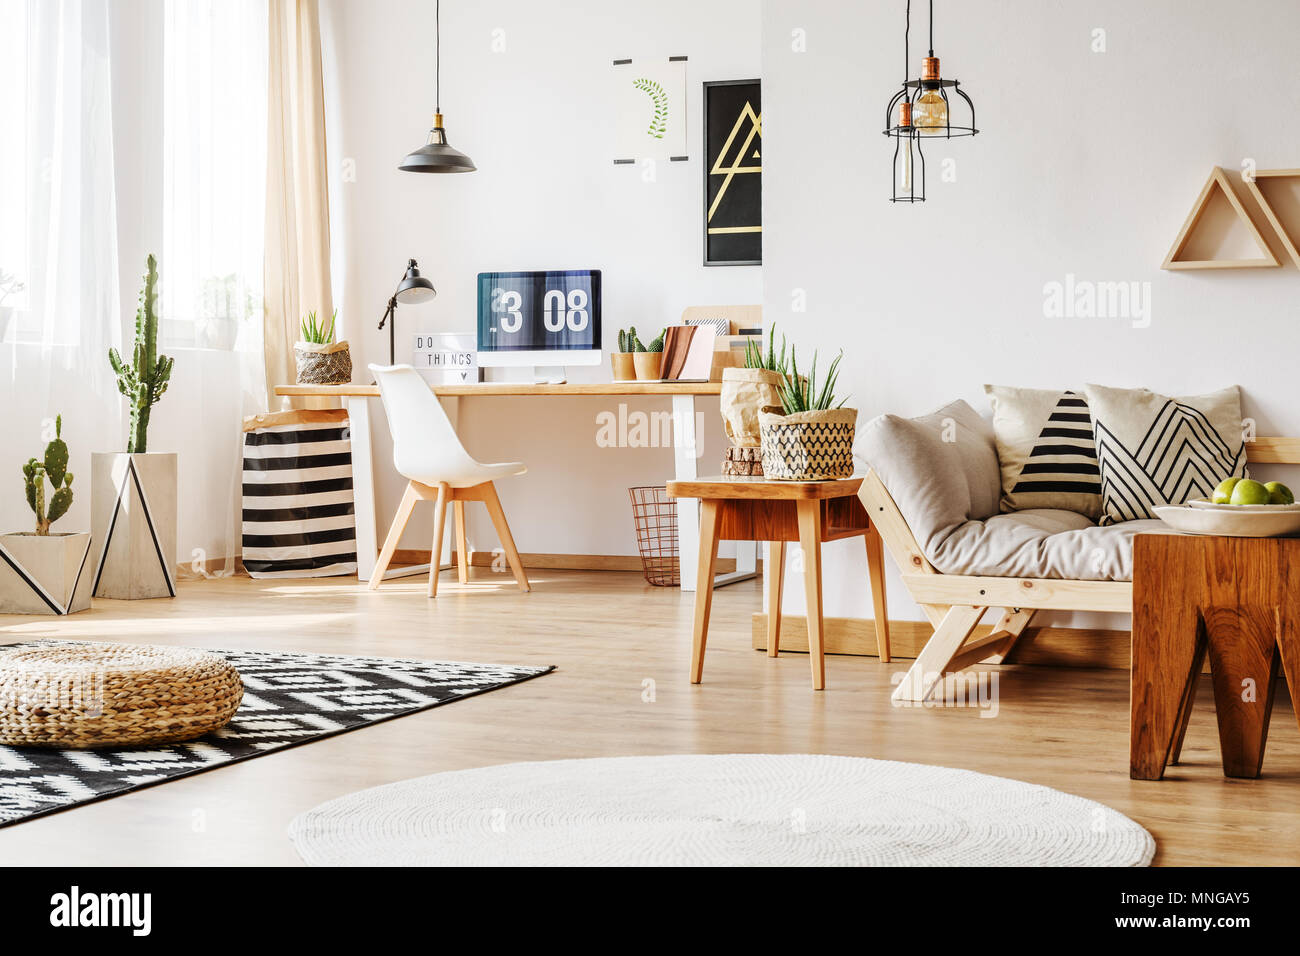 Interior design idea for home workspace with white wall, wooden ...